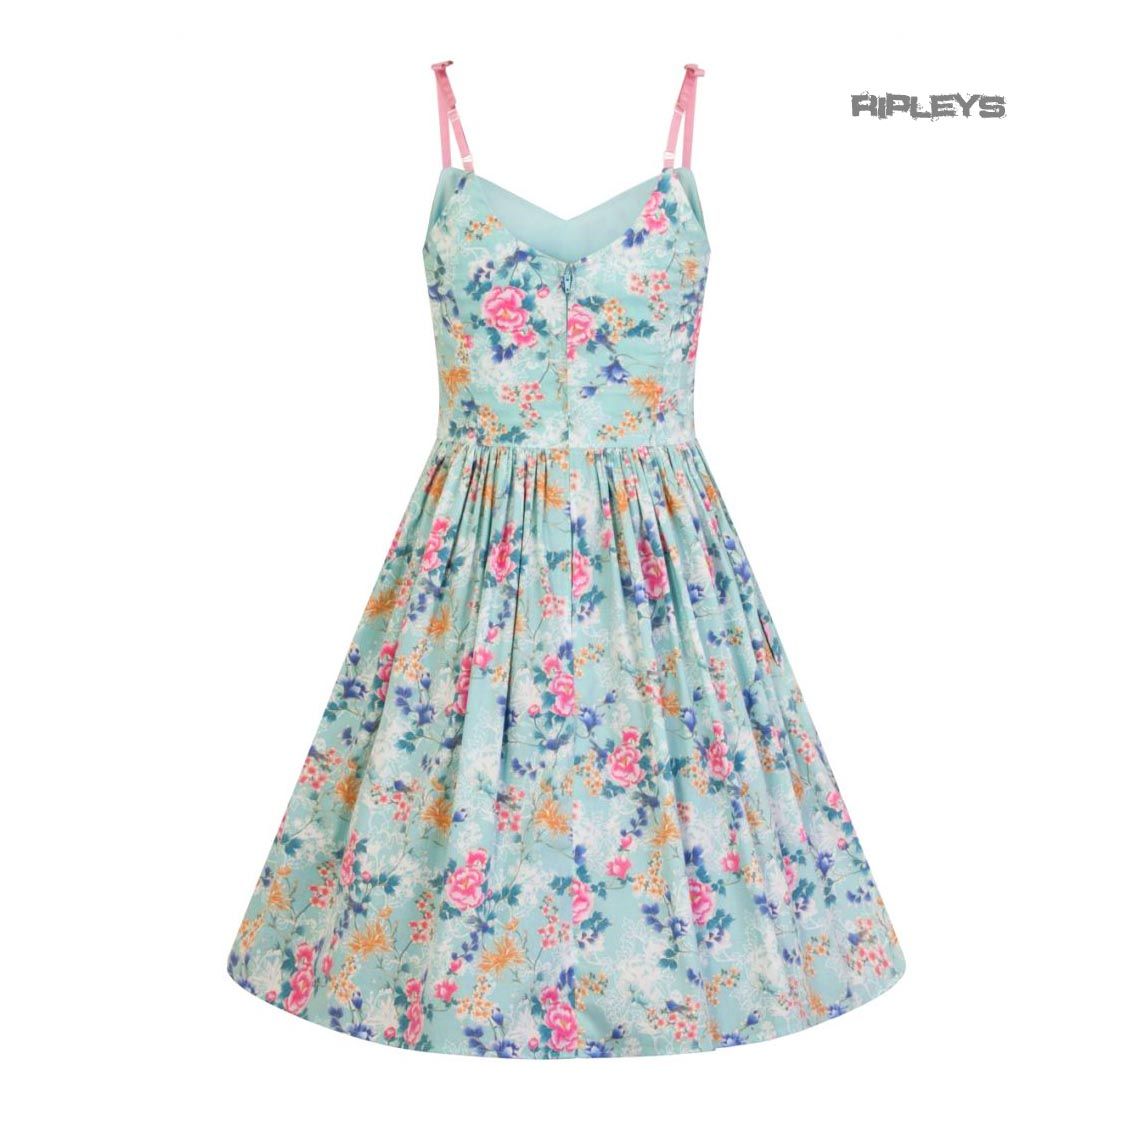 Hell-Bunny-50s-Mid-Length-Dress-Vintage-Blue-Pink-SAKURA-Flowers-Roses-All-Sizes thumbnail 4